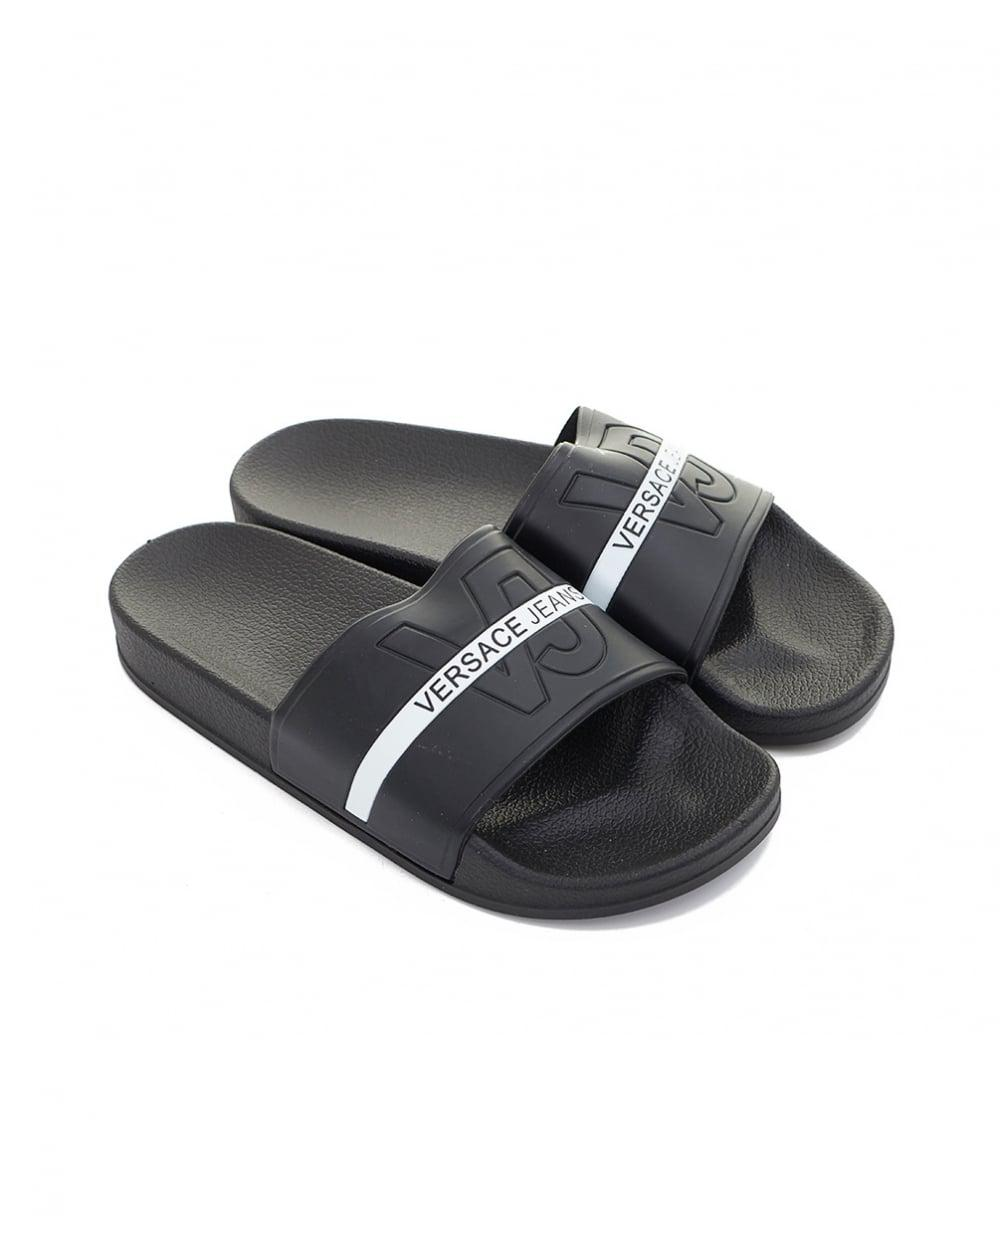 077da5fbc35b Lyst - Versace Jeans Sliders in Black for Men